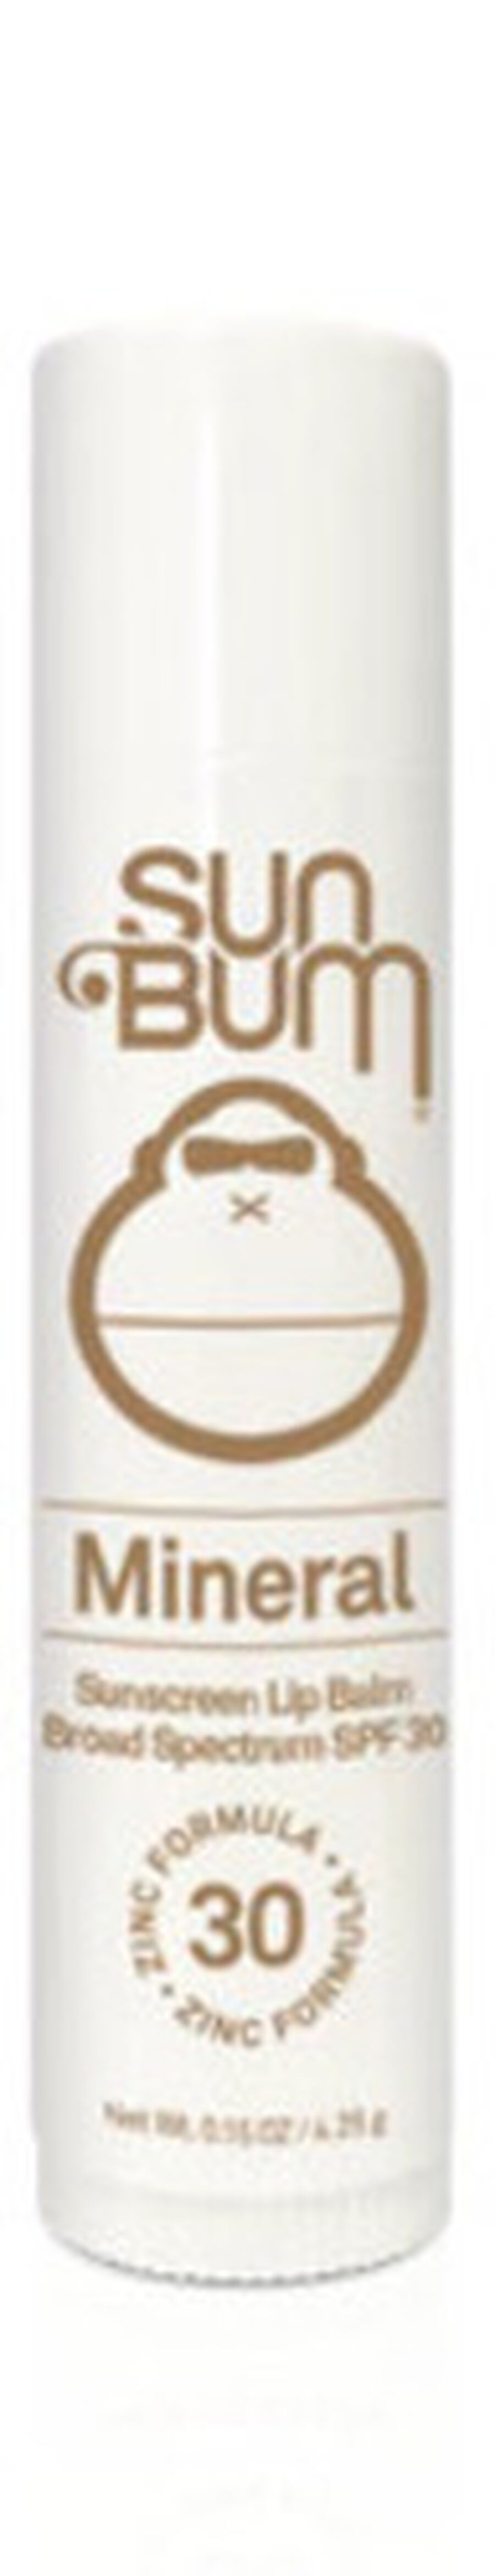 Sun Bum Mineral Lip Balm SPF 30, .15 oz, , large image number 0